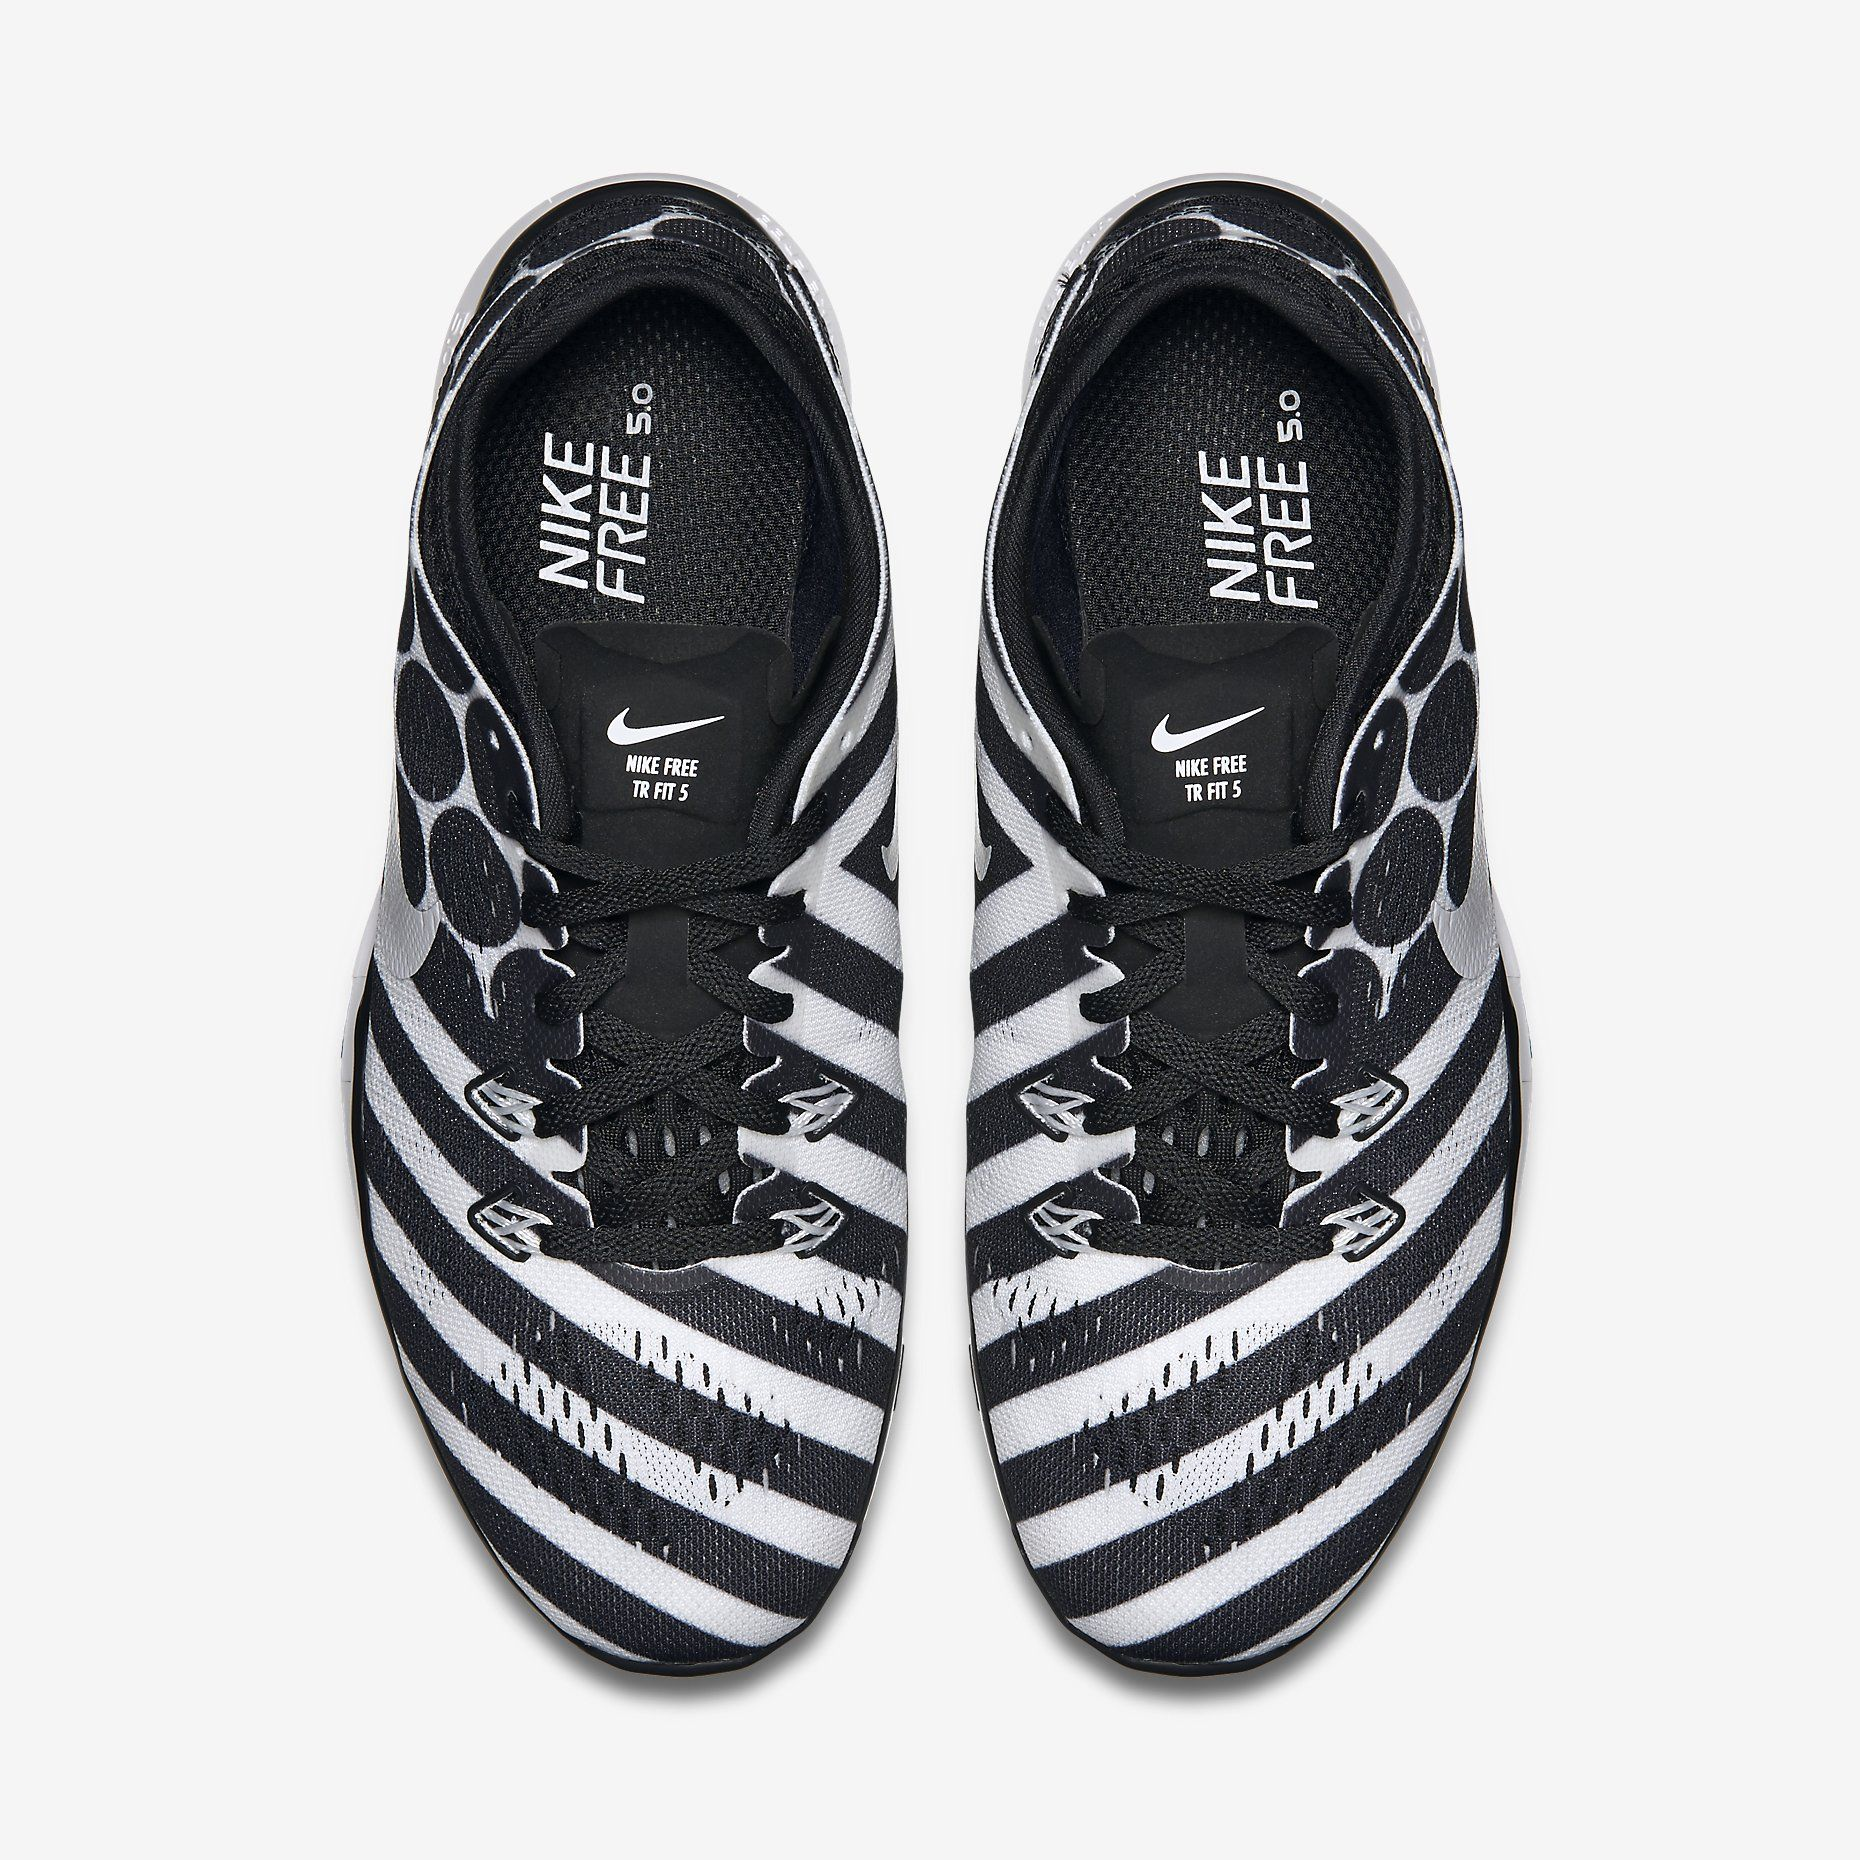 nike free 5.0 black and white stripe with polka dot